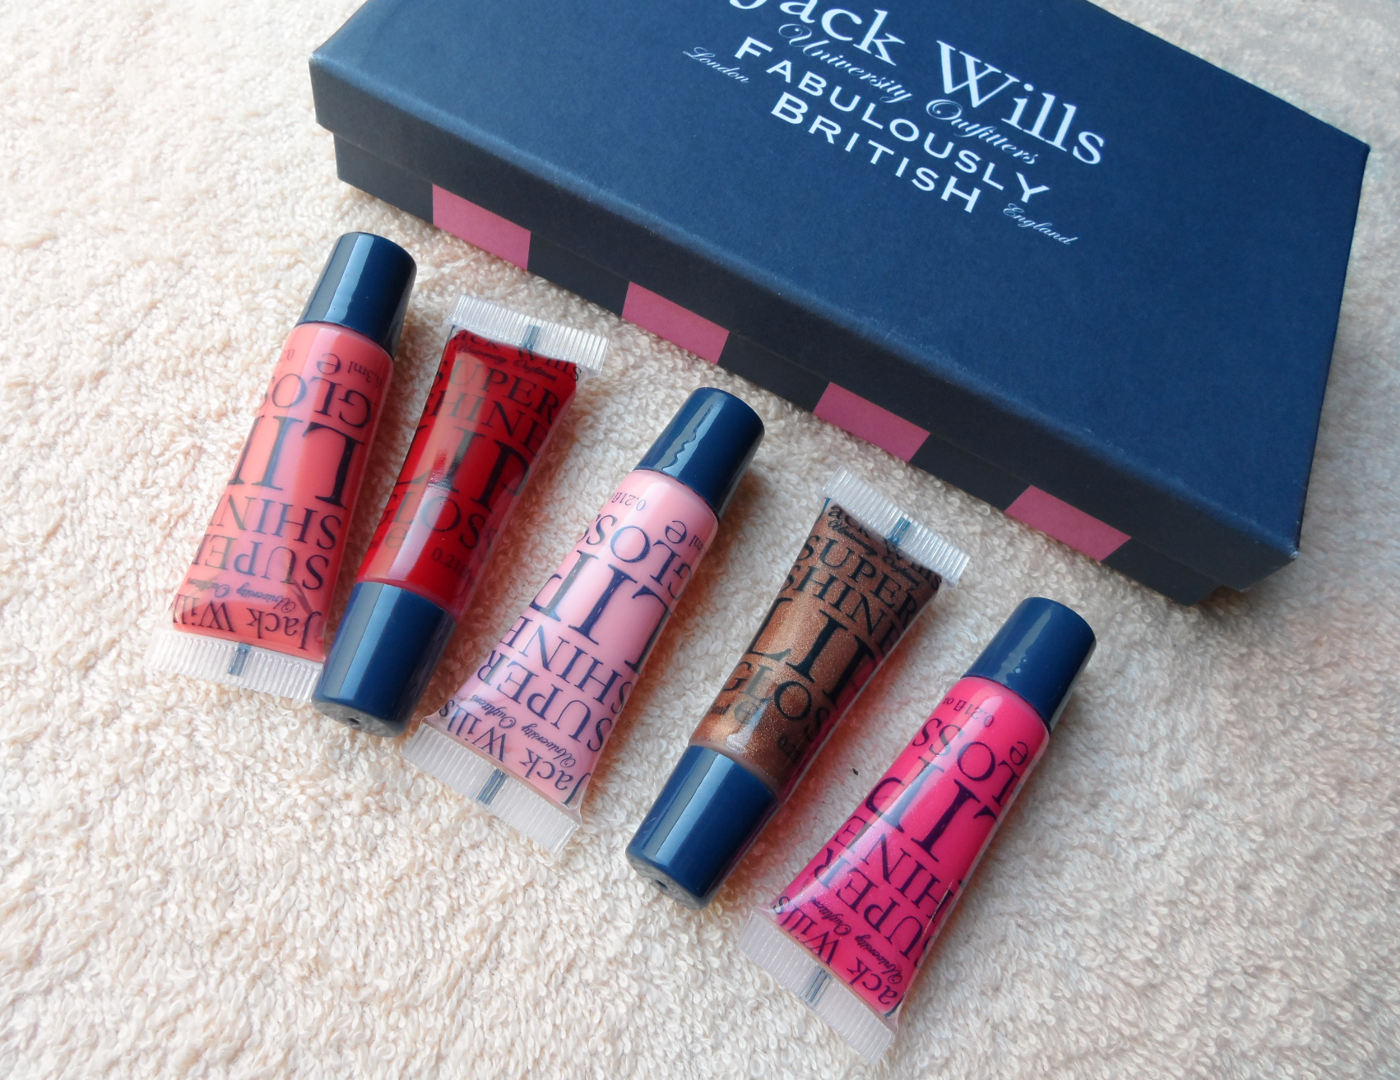 fabulously British lip gloss set blogger review liz breygel january girl